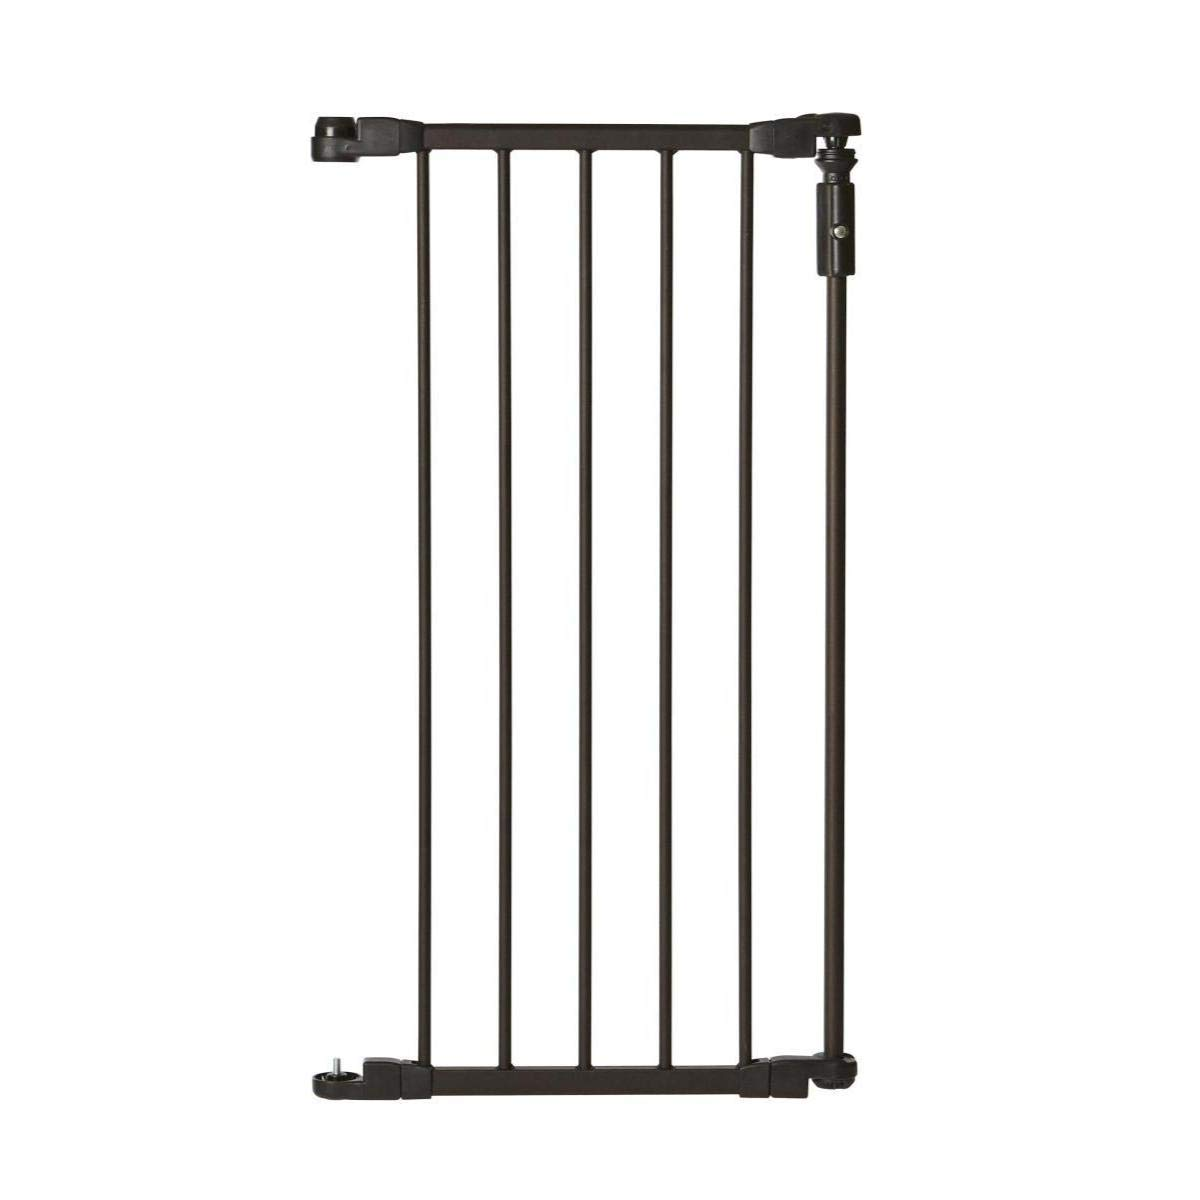 North States 6 Bar Extension for the Bronze Deluxe D cor Gate Adds an additional 15 inches to the width of the gate for extra wide spaces 15 width, Bronze